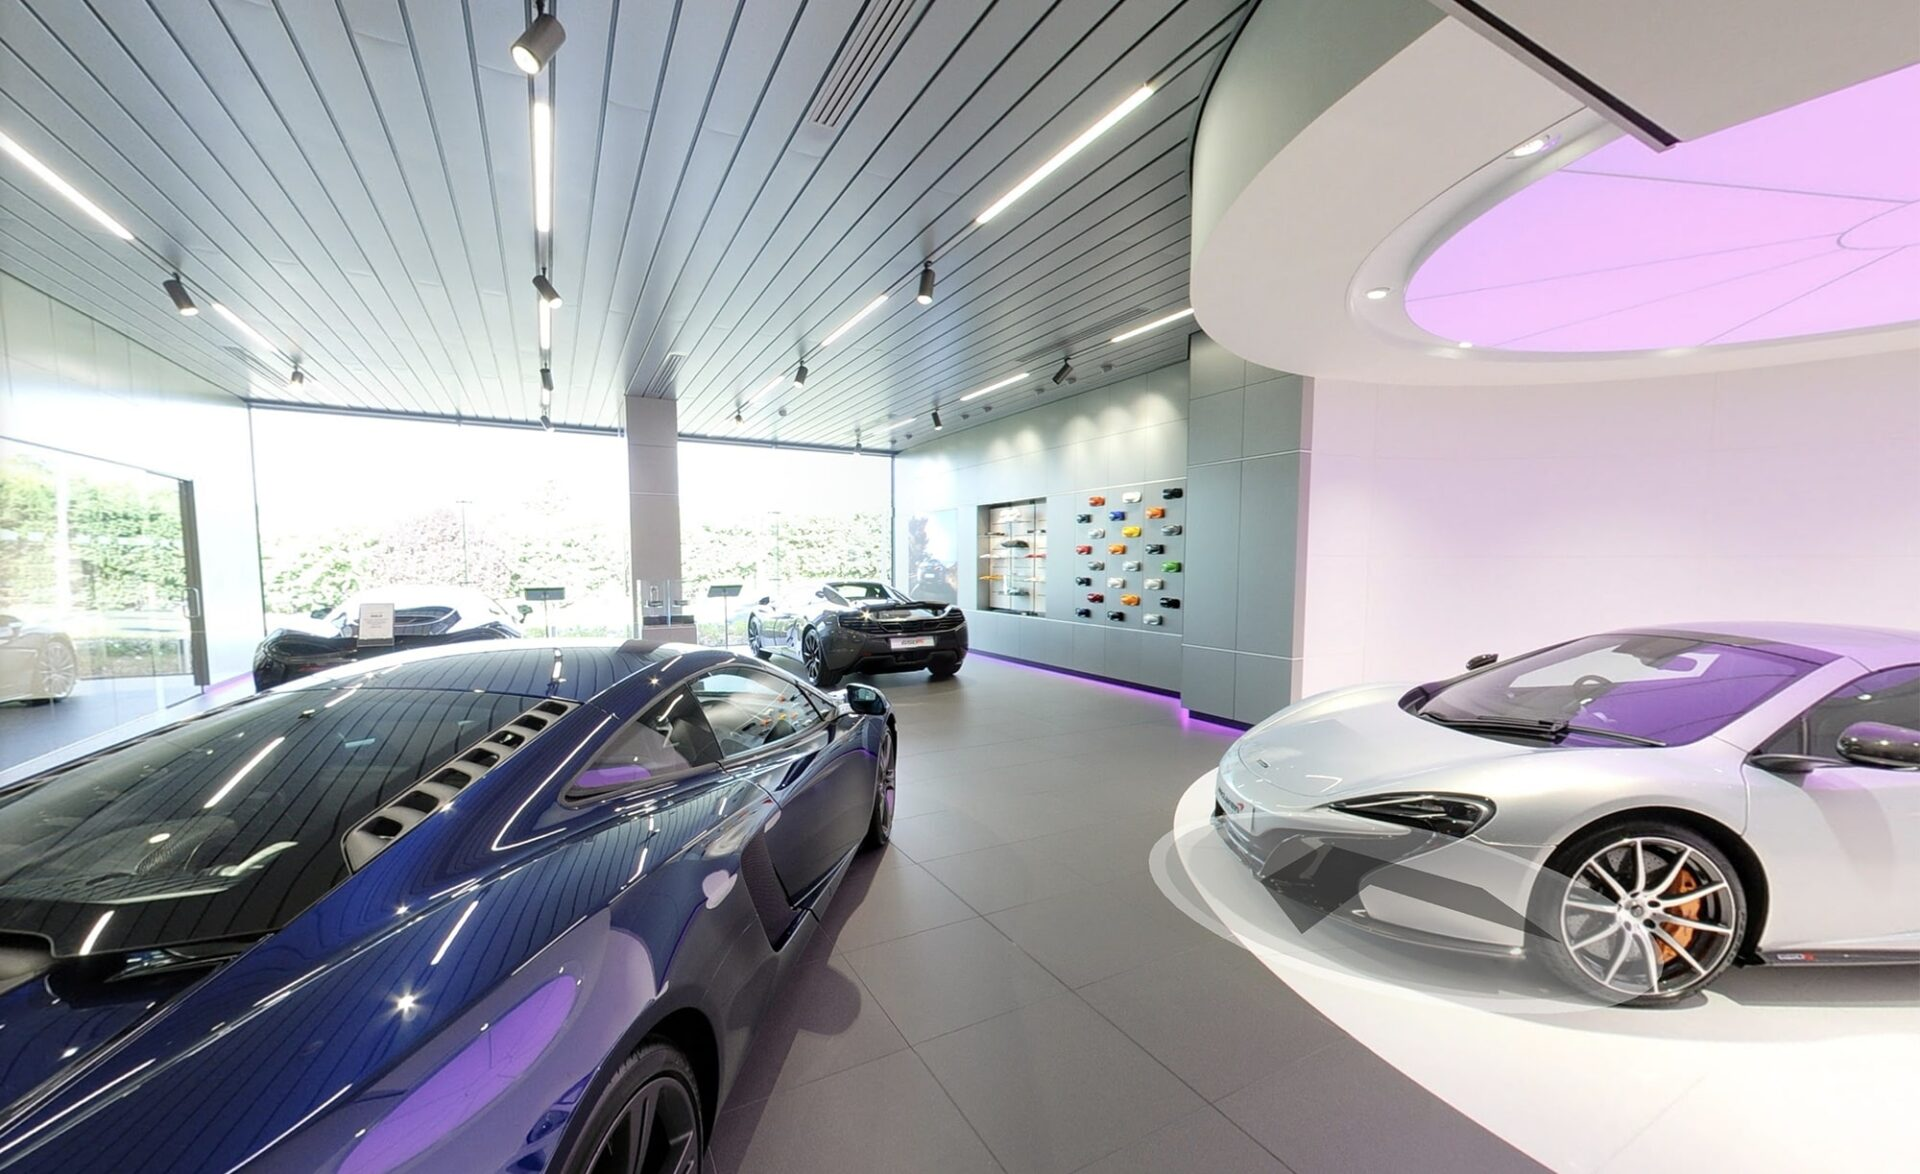 Rybrook Specialist Cars Bristol Google Maps Business View